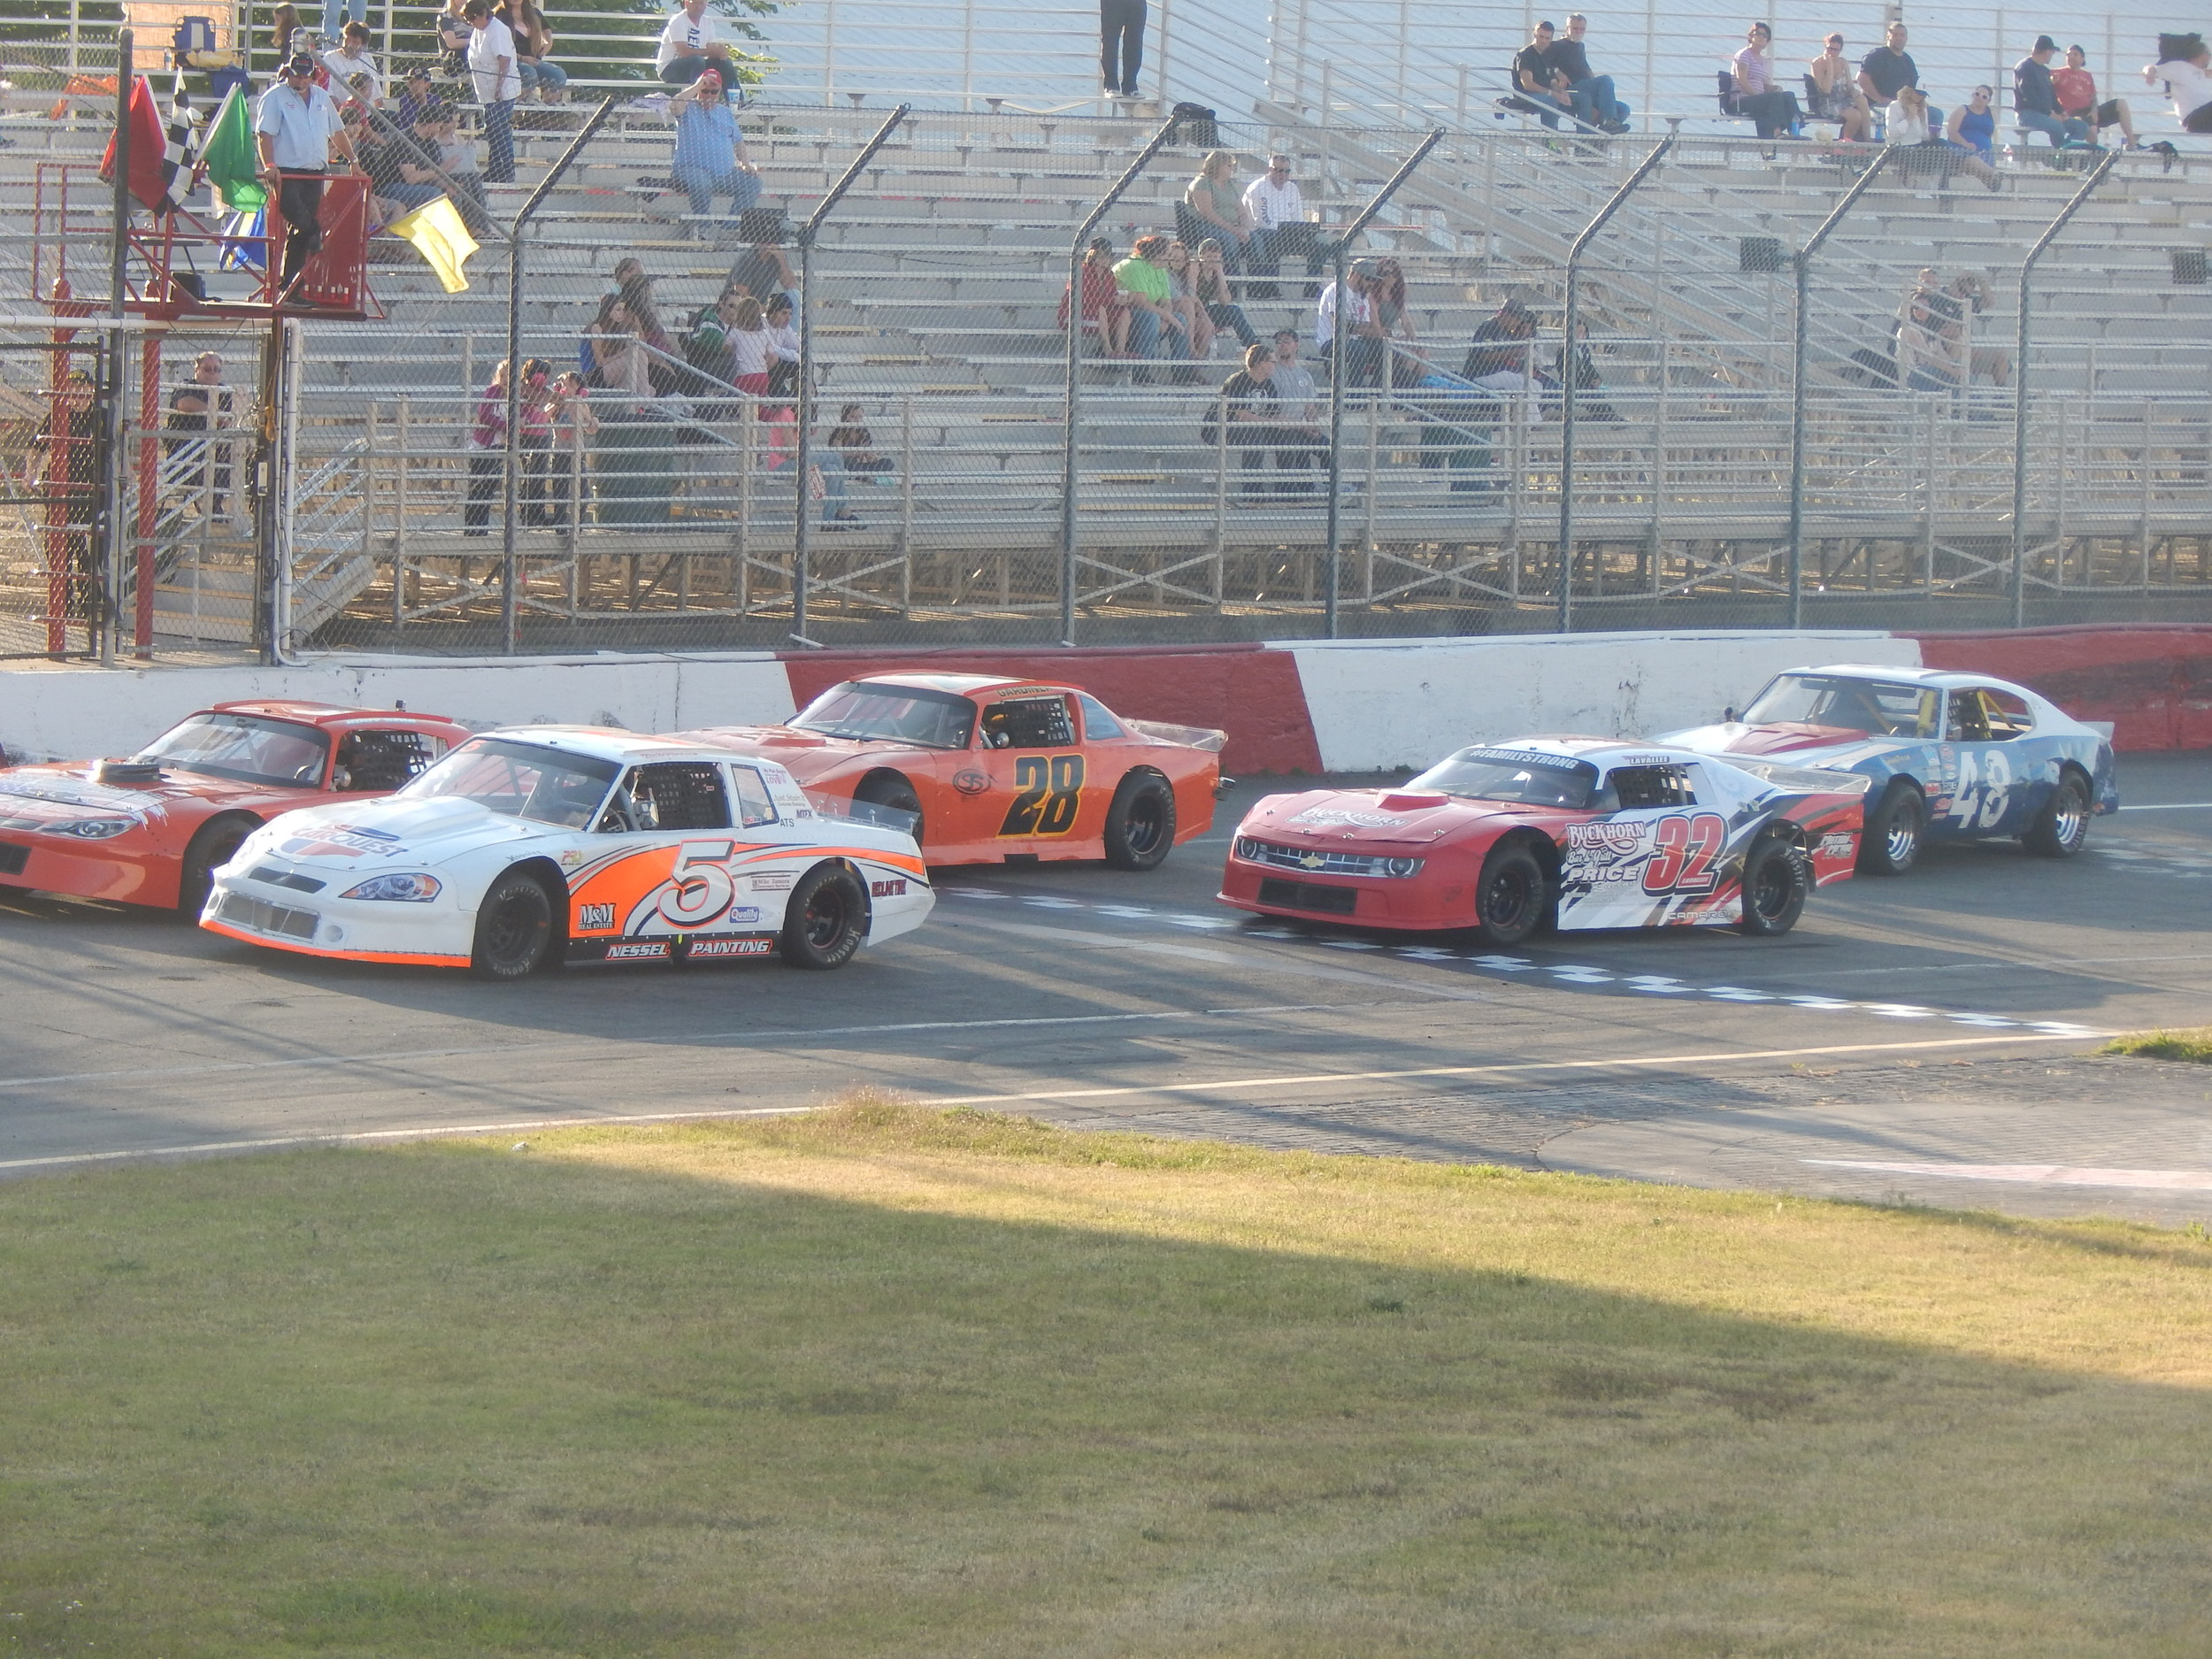 The Street Stocks lining up for one of their races ( Jeremy McDonald 65 Sports)